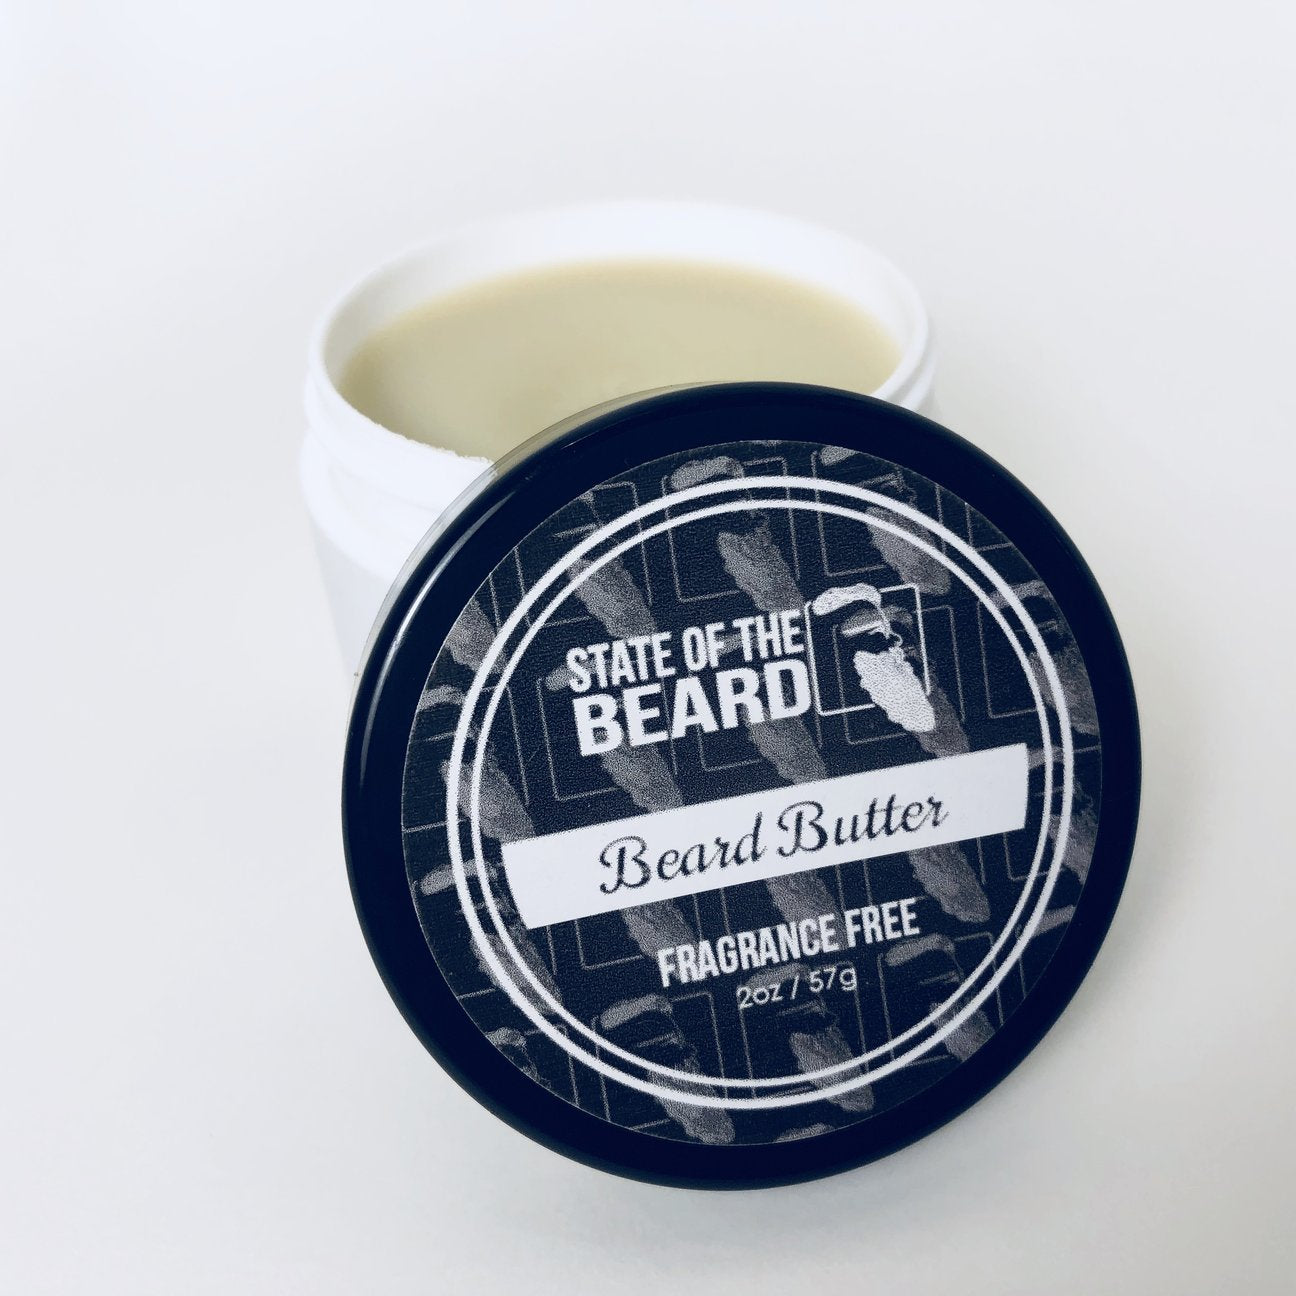 STATE OF THE BEARD - BEARD BUTTER FRAGRANCE FREE